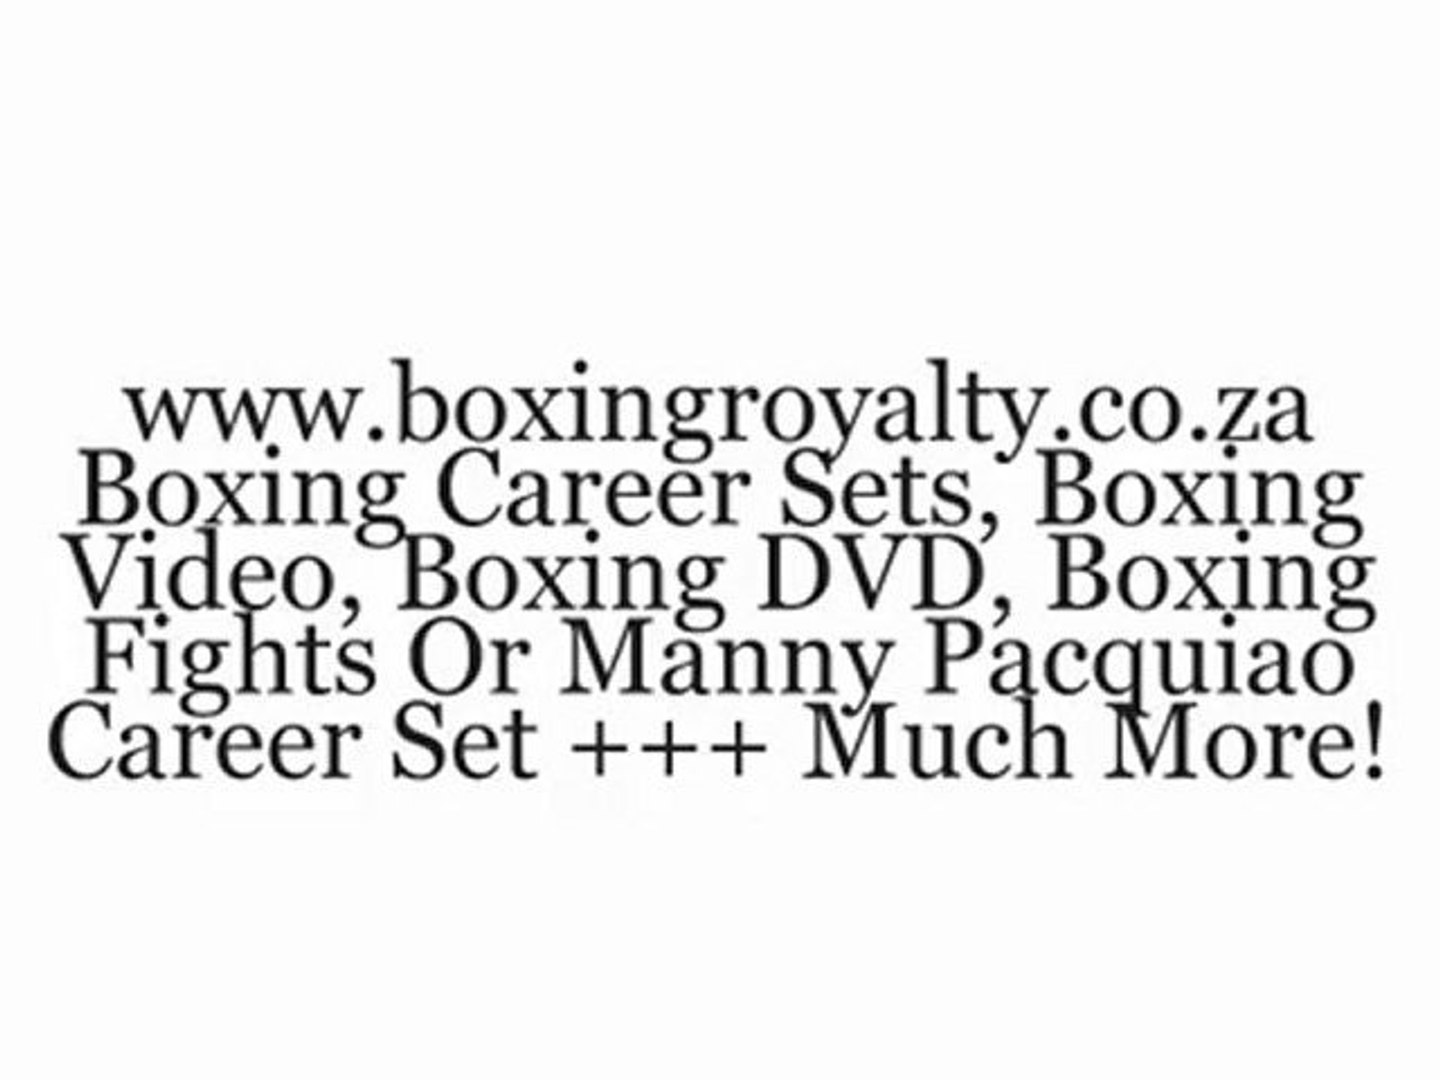 Leading Boxing Website For Boxing Enthusiasts & Collectors. Best Boxing DVDs Online